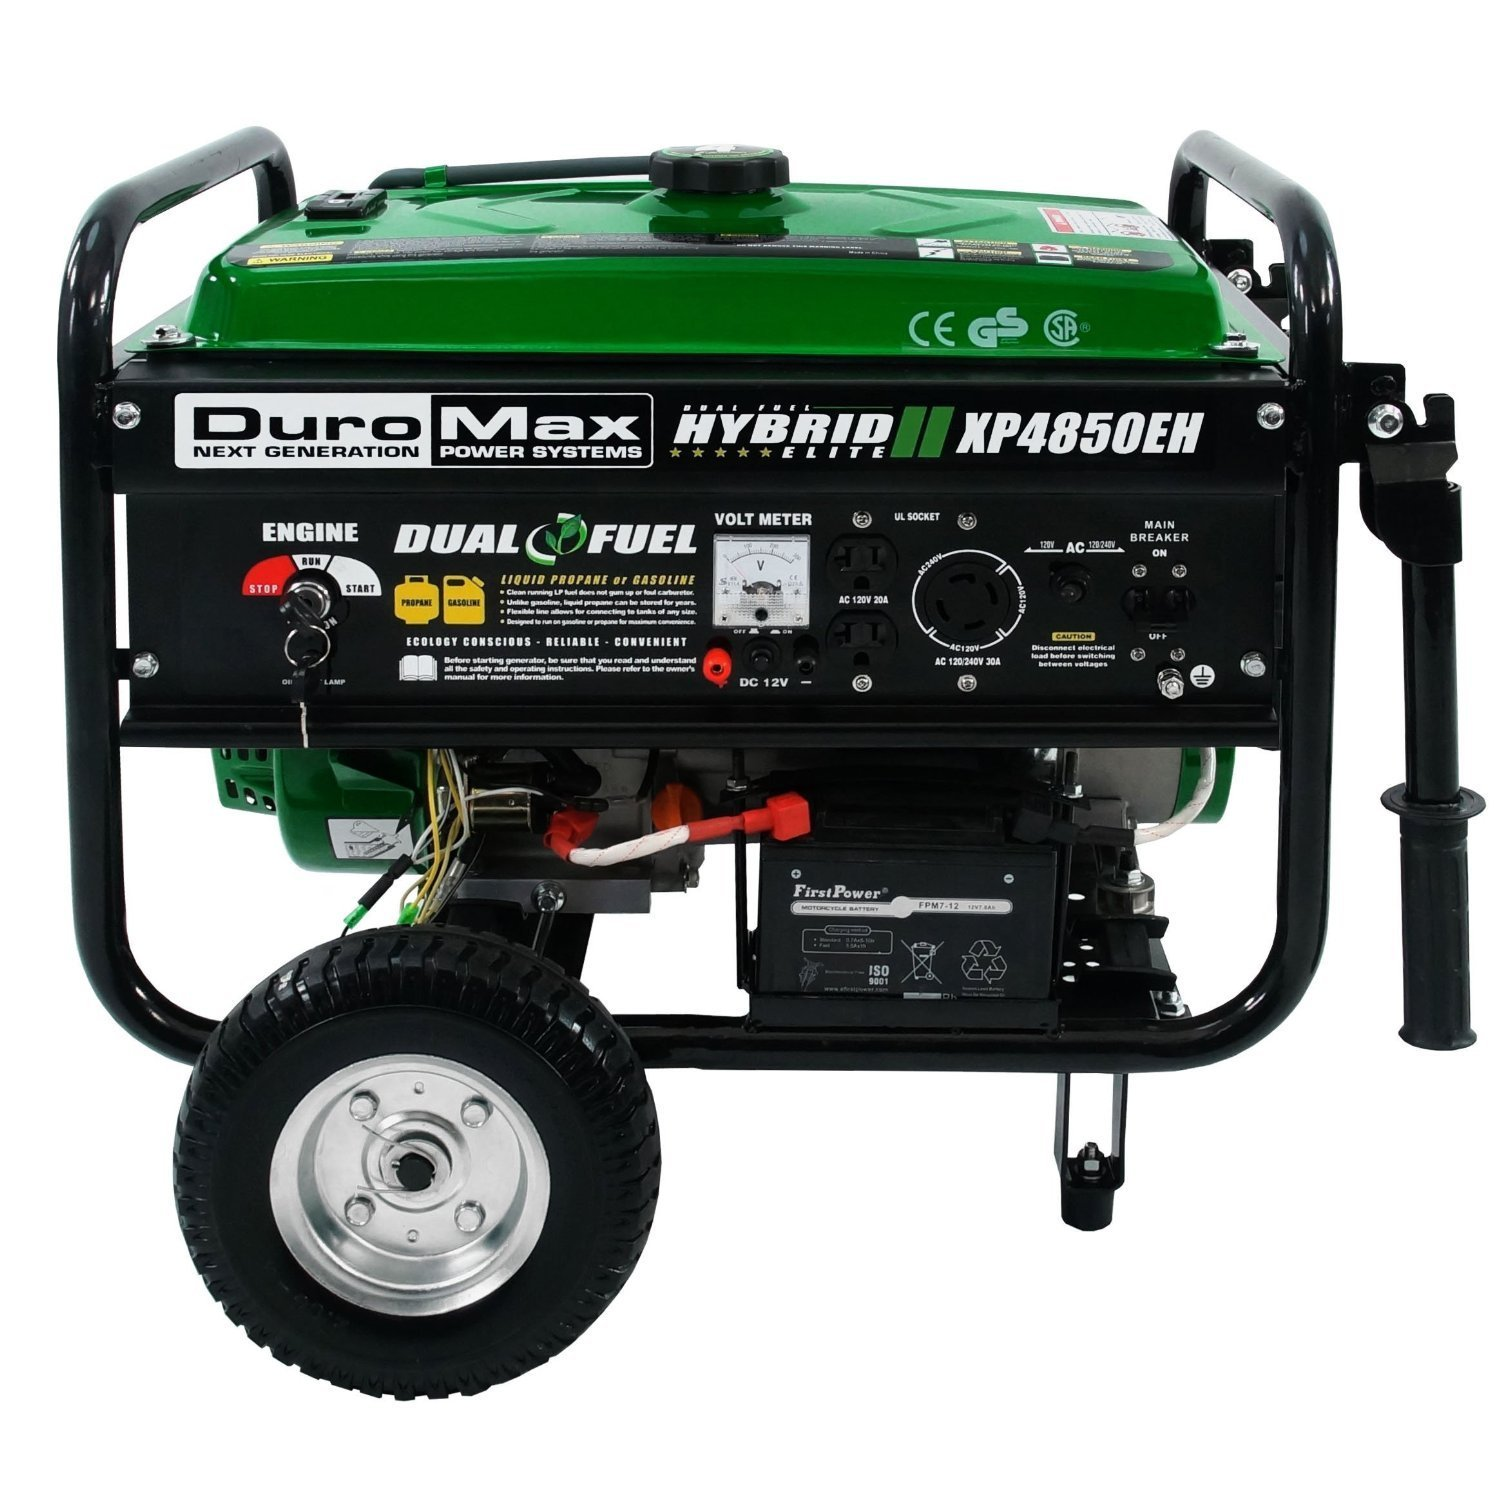 DuroMax XP4850EH Dual Fuel Portable Generator, Green